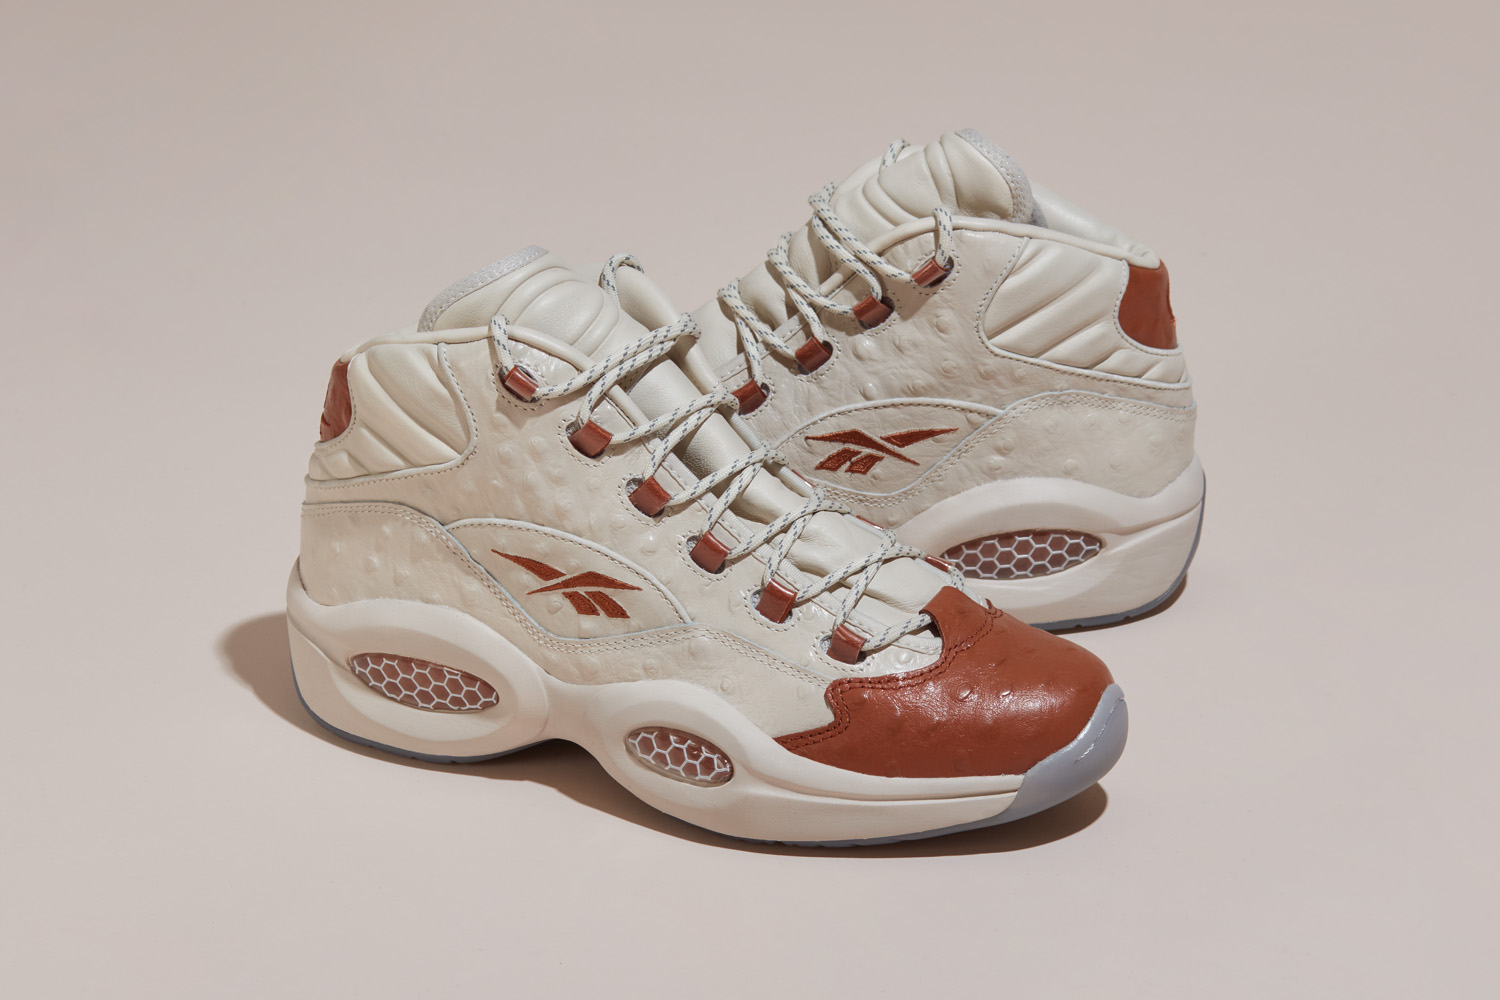 Snearkersnstuff offre une dimension luxueuse à la Reebok Question Mid